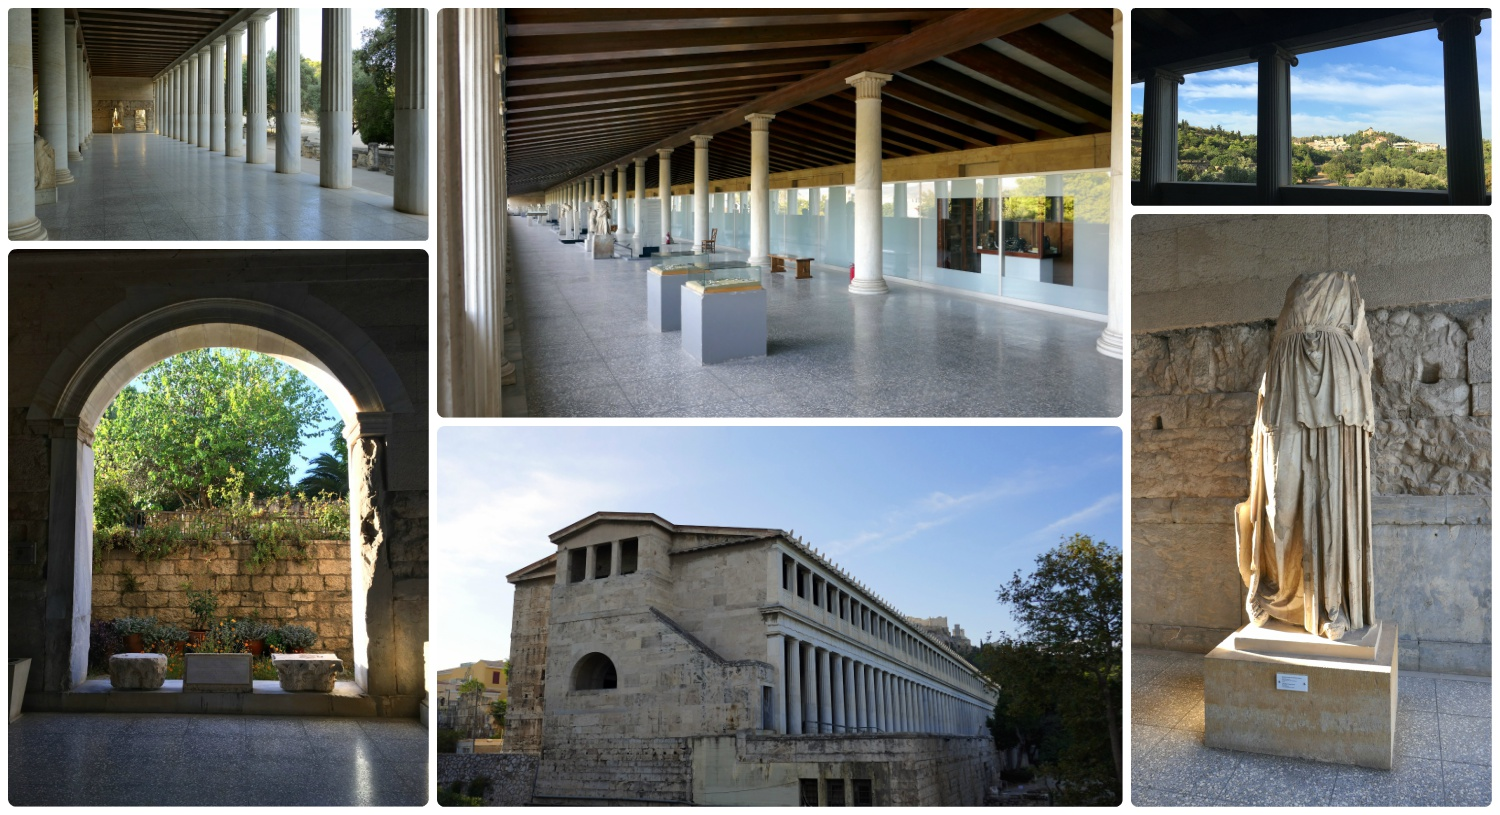 The Stoa of Attalos is located on the grounds of the Ancient Agora of Athens, which is included in the Athens Combined Ticket.